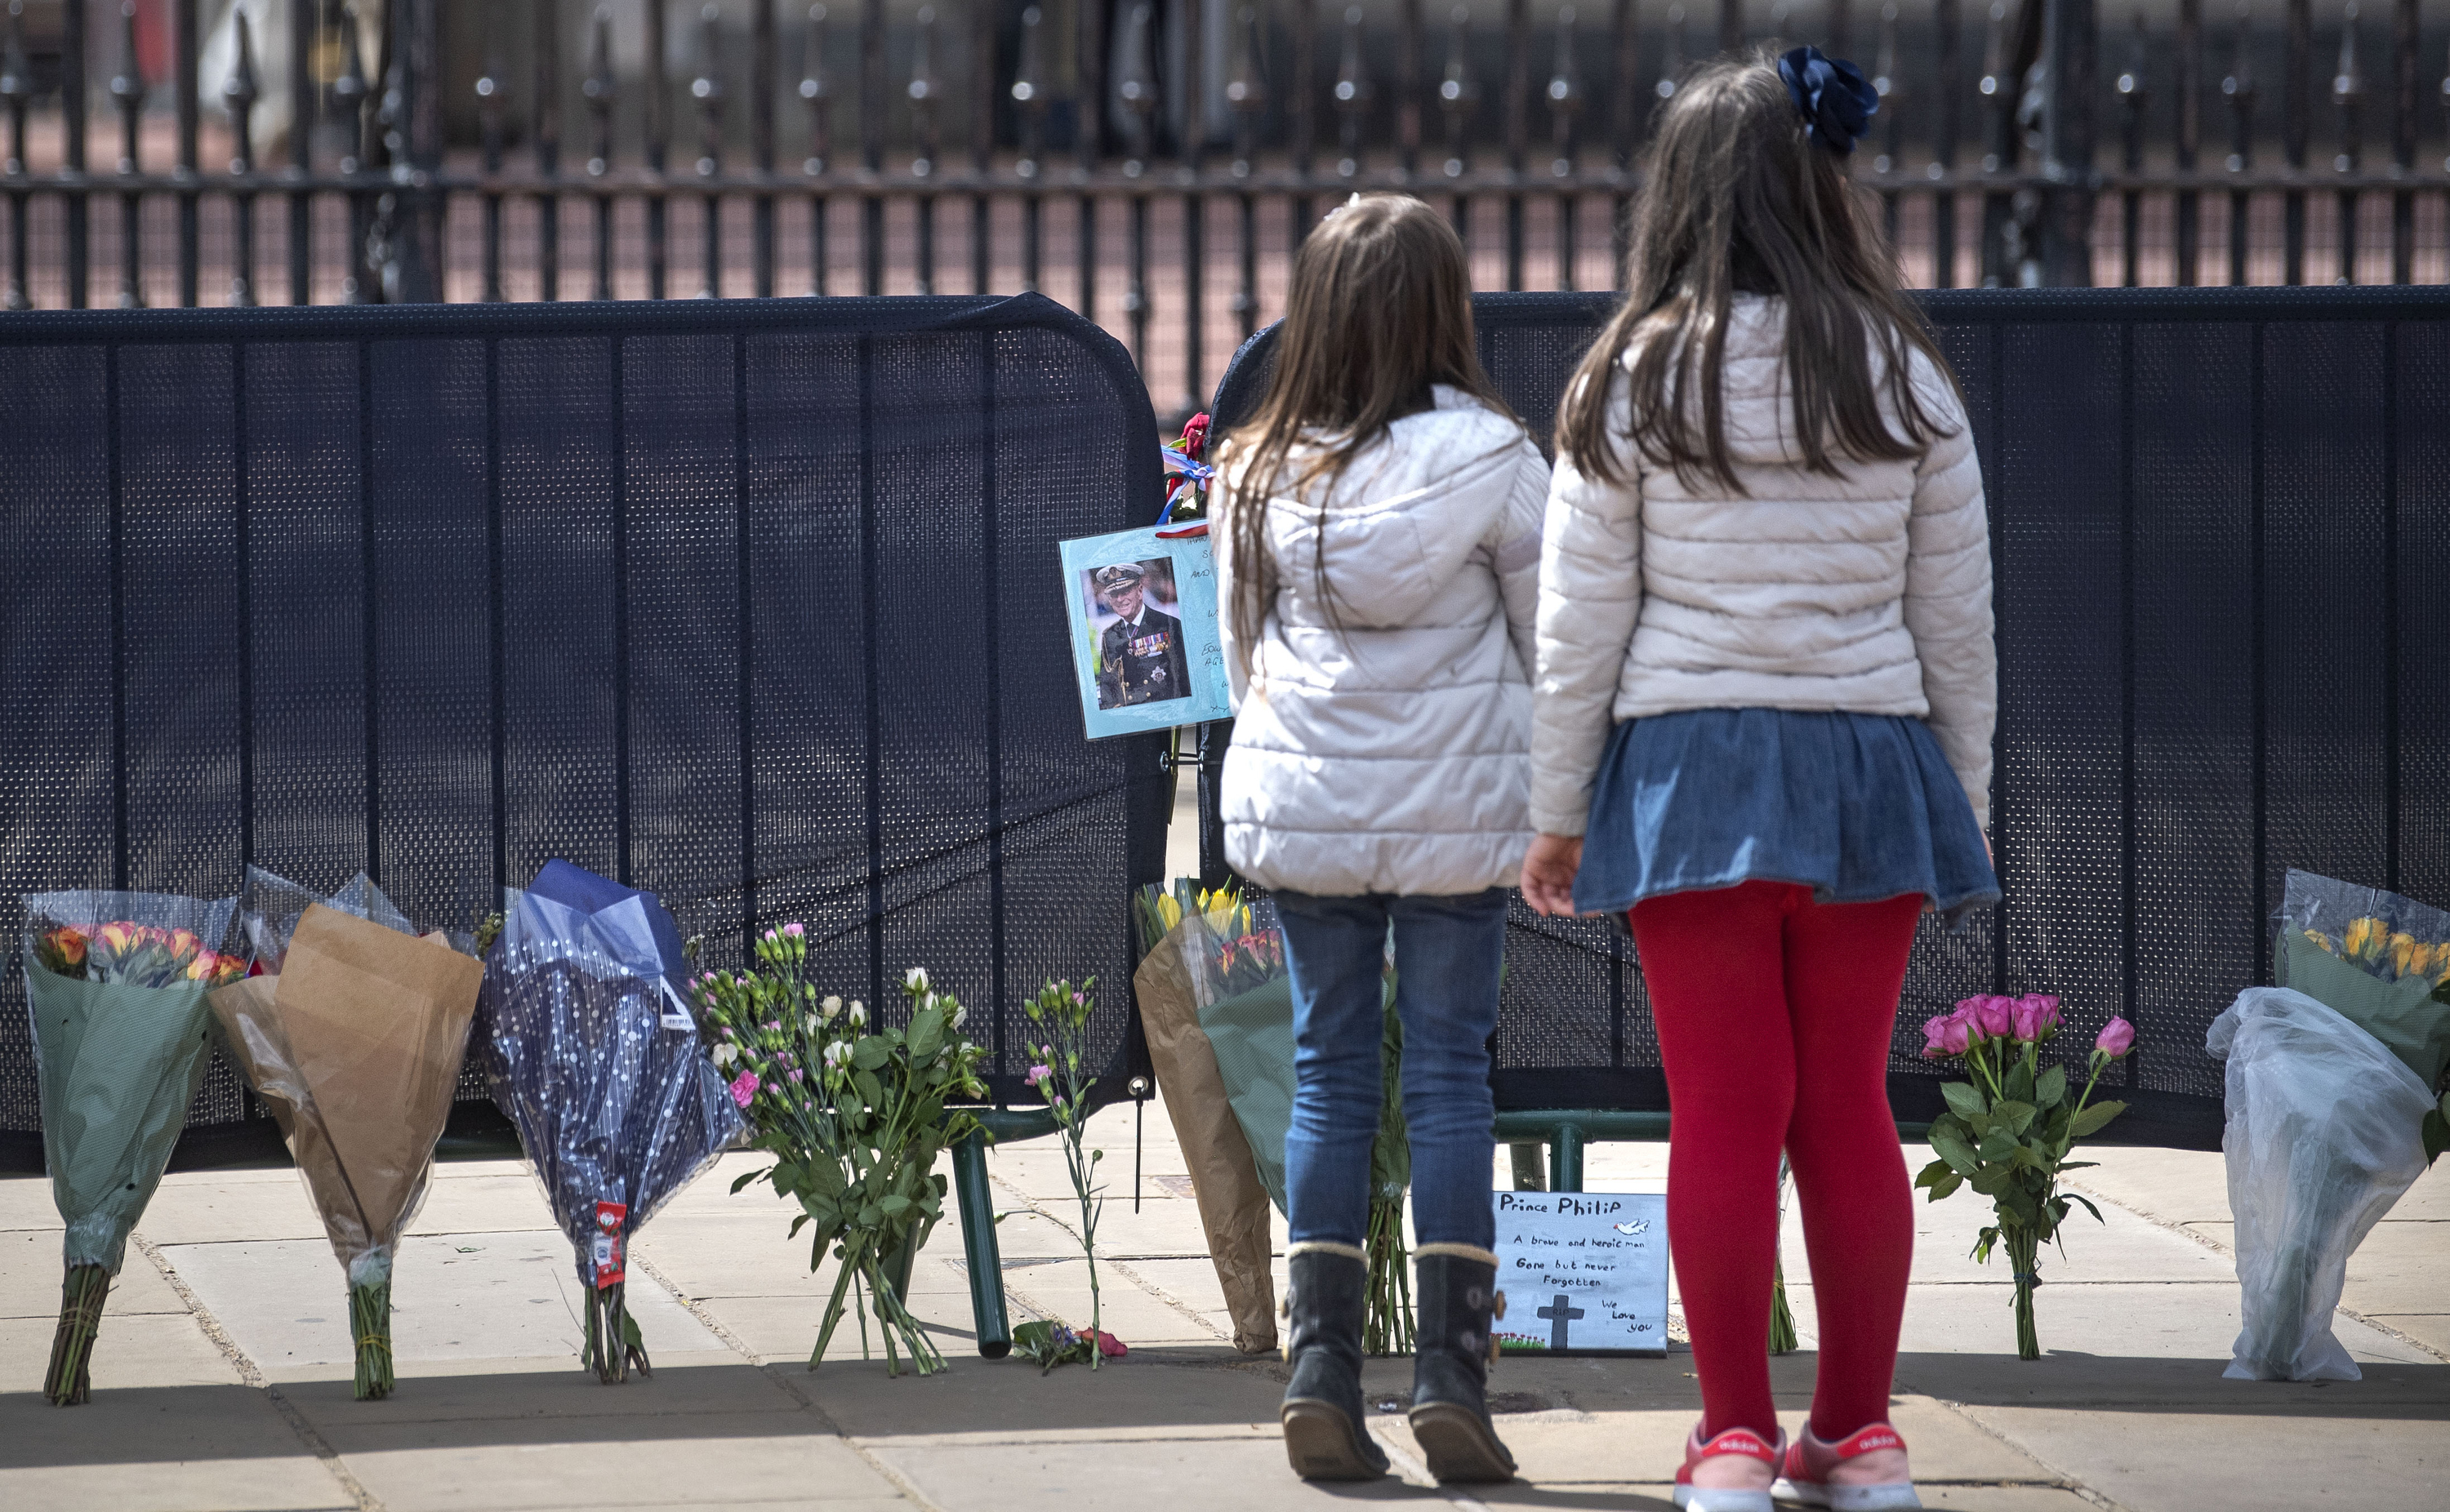 <p>Two girls look at flowers and messages left by members of the public outside Buckingham Palace, London, following the death of the Duke of Edinburgh at the age of 99 on Friday. Picture date: Tuesday April 13, 2021.</p>